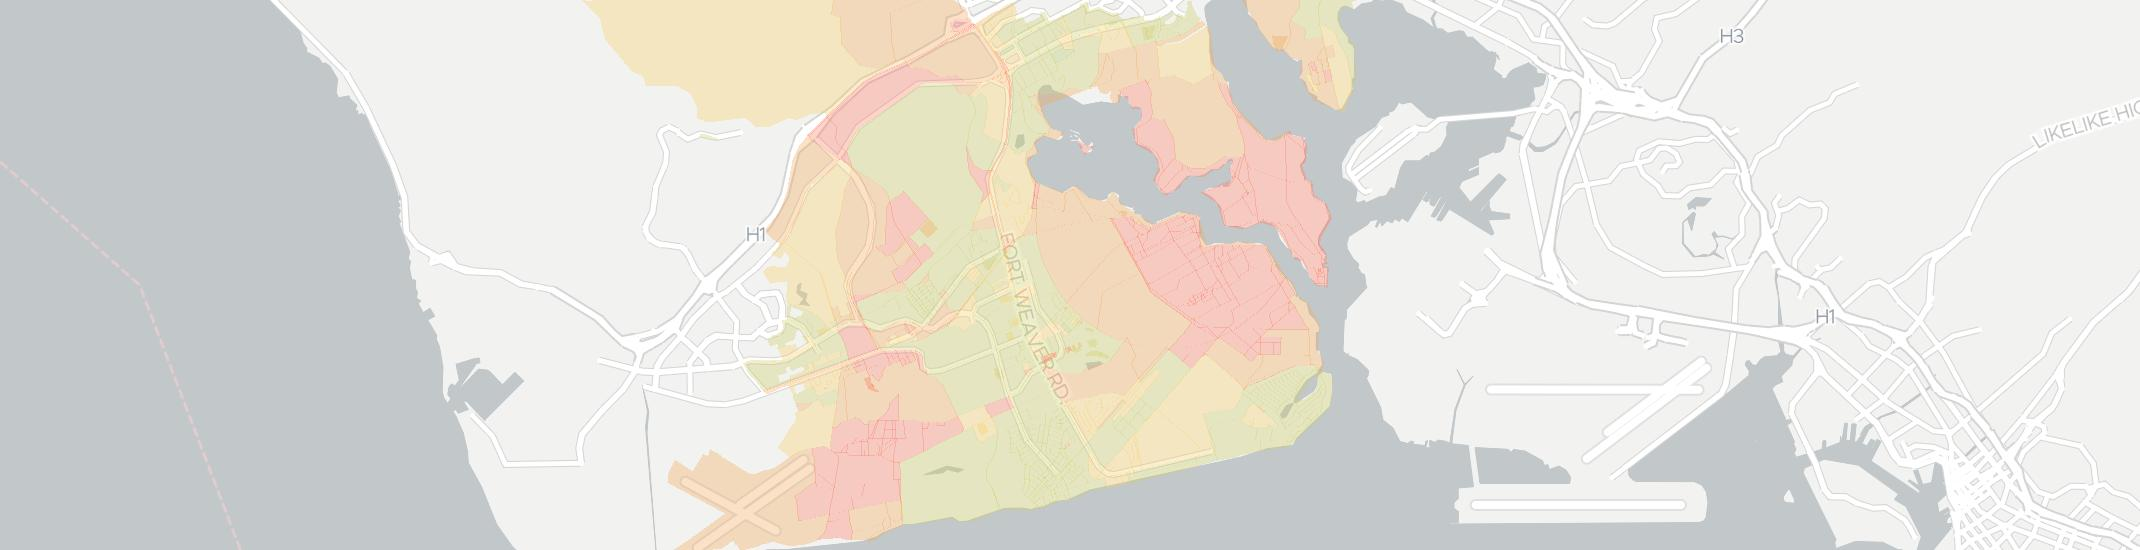 Ewa Beach Internet Competition Map. Click for interactive map.